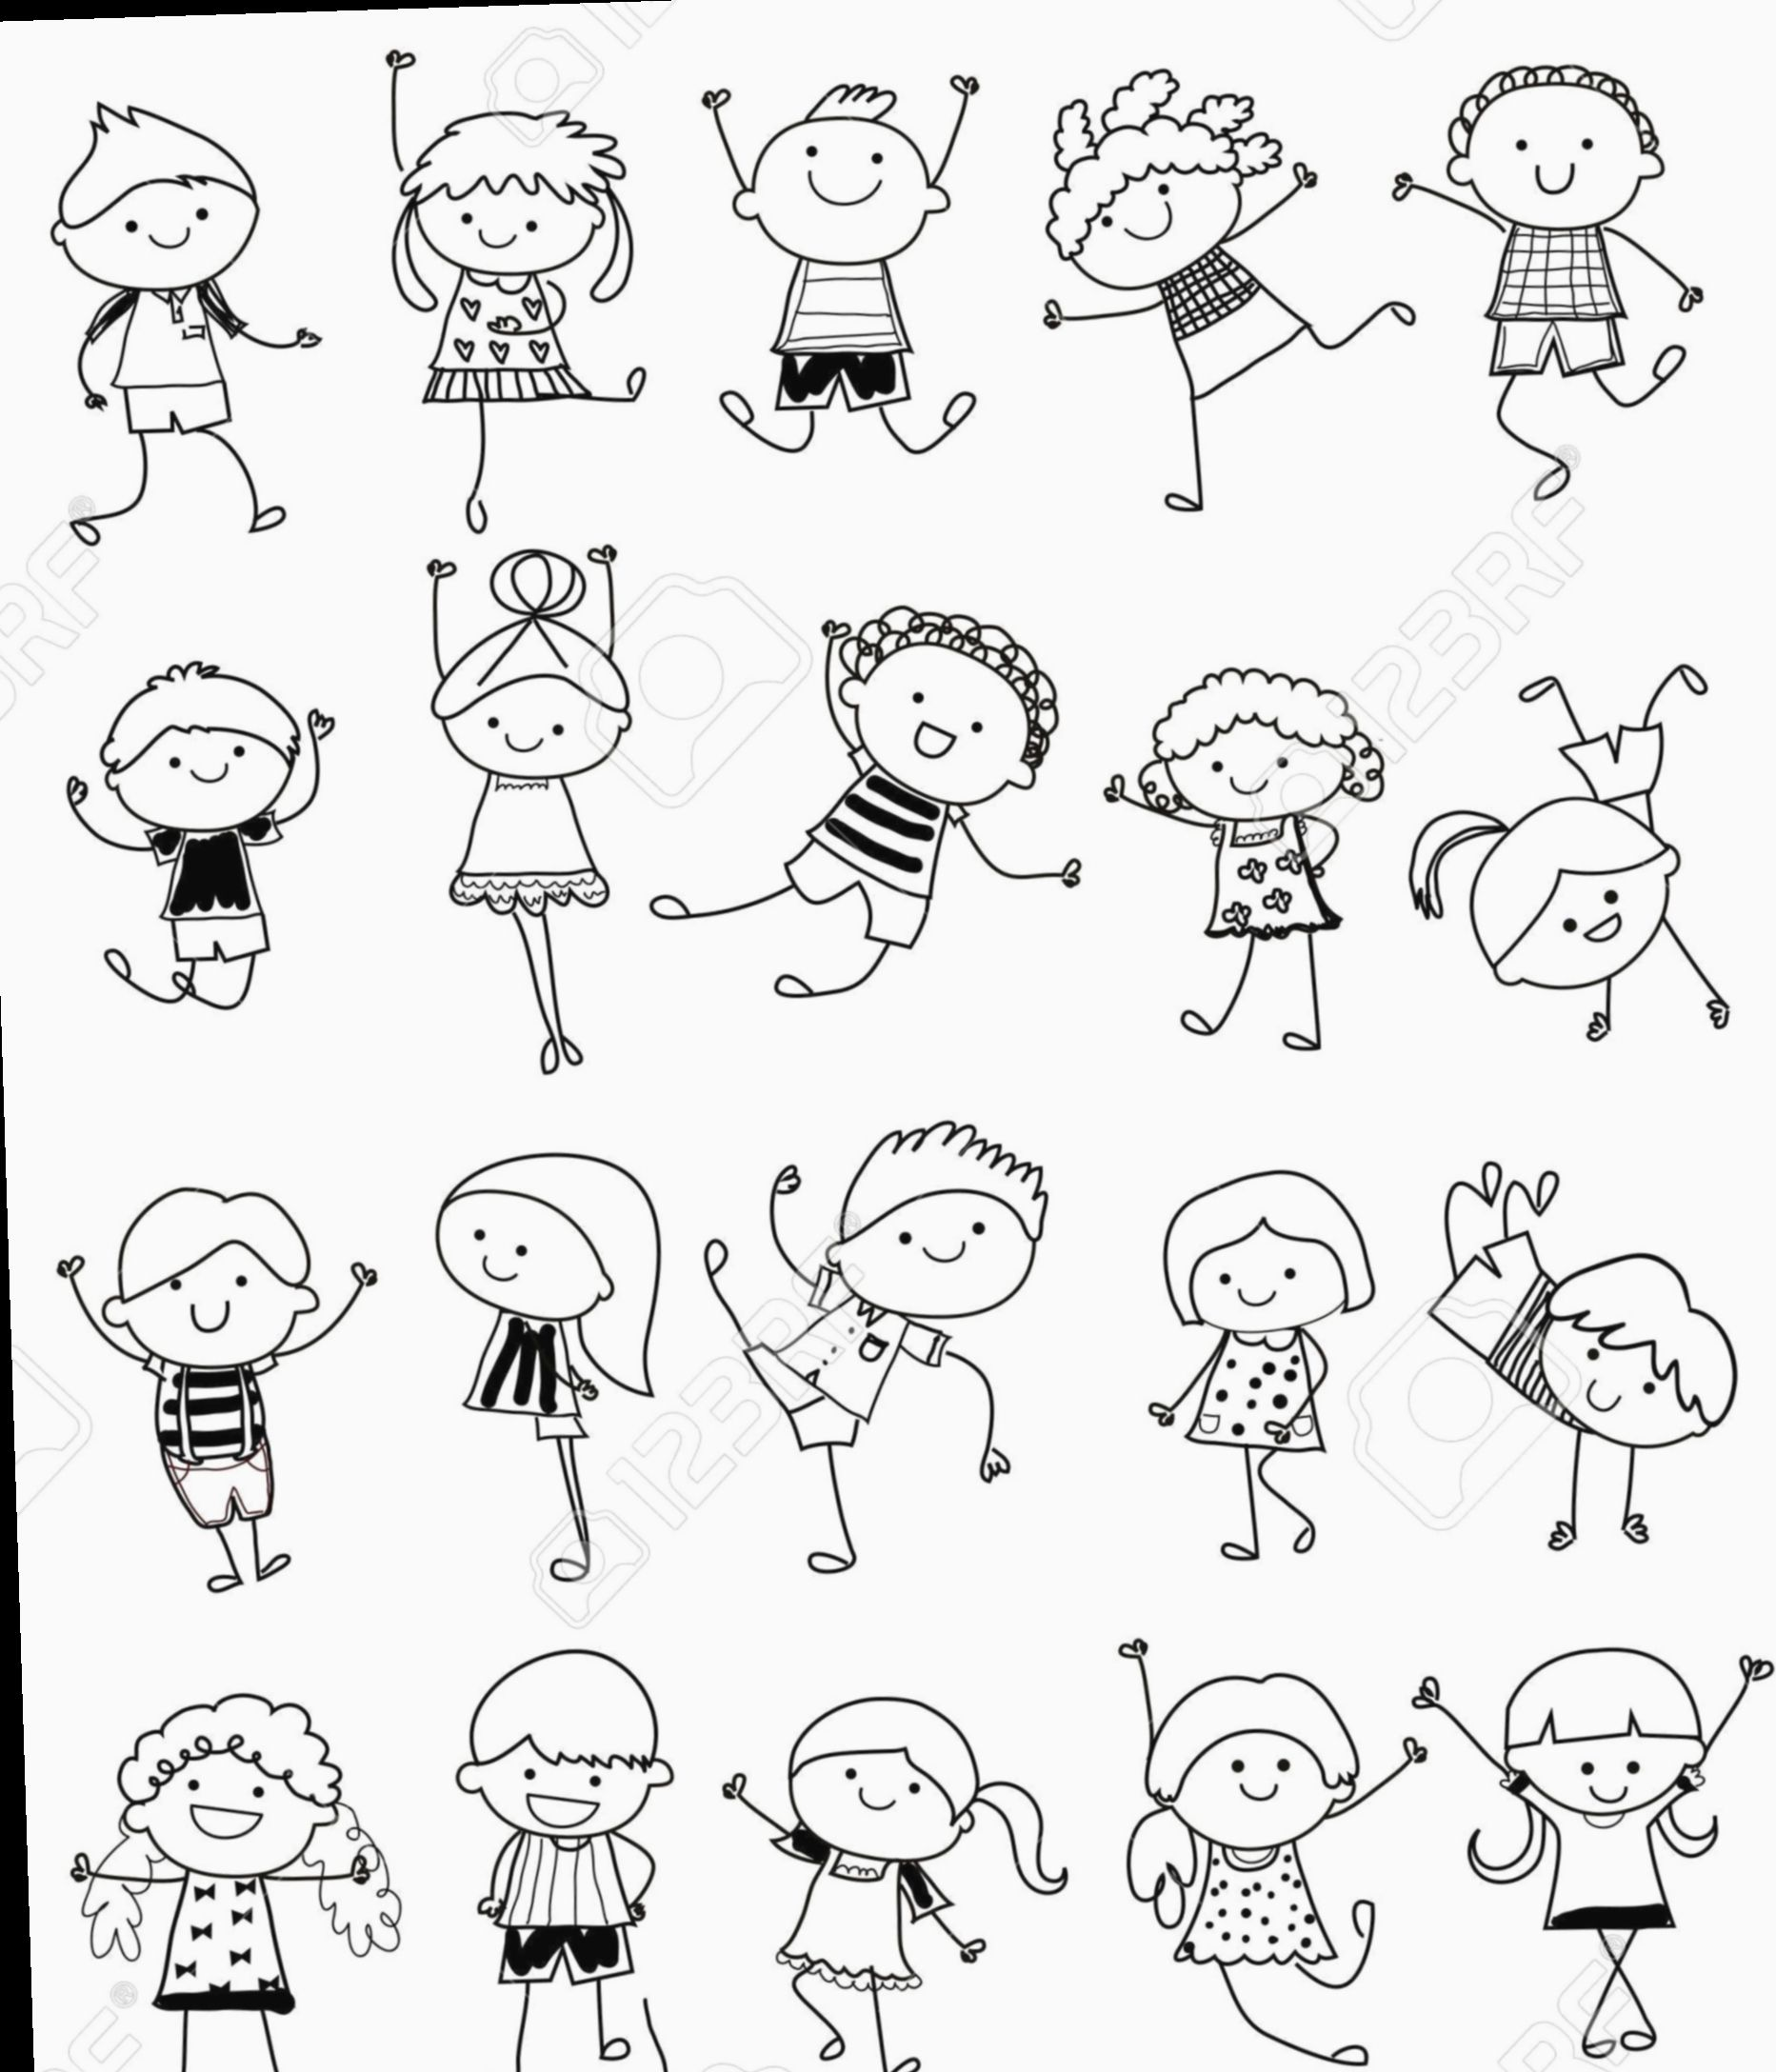 20 Cute Doodles Easy People Stick Figure Drawing Drawing For